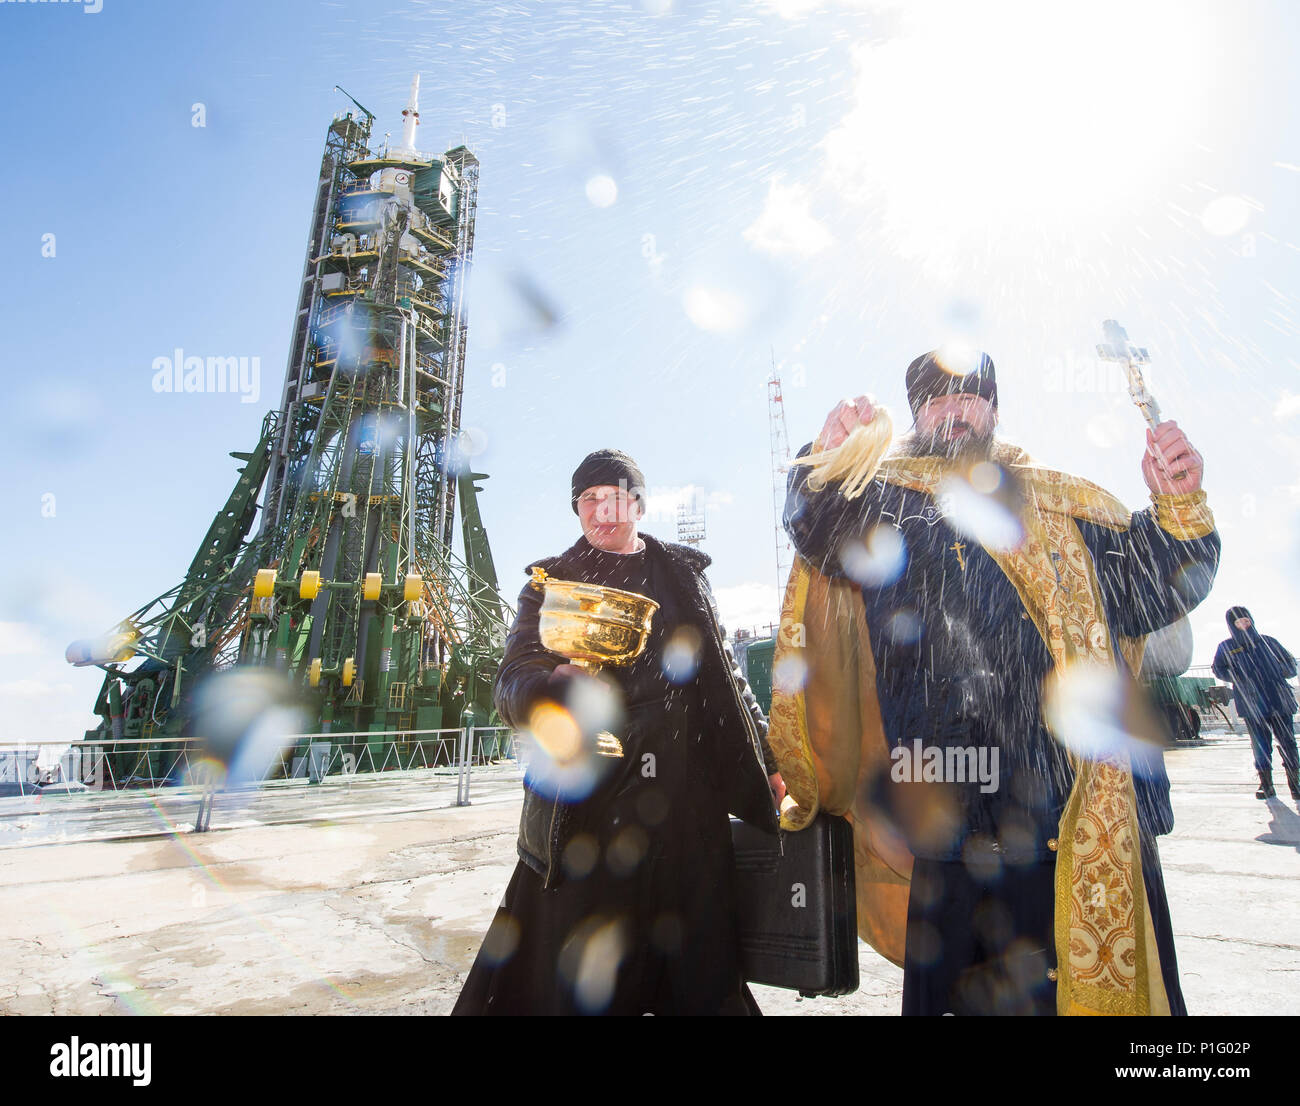 An Orthodox priest blesses members of the media at the Baikonur Cosmodrome launch pad on Thursday, March 17, 2016 in Kazakhstan.  Launch of the Soyuz rocket. - Stock Image